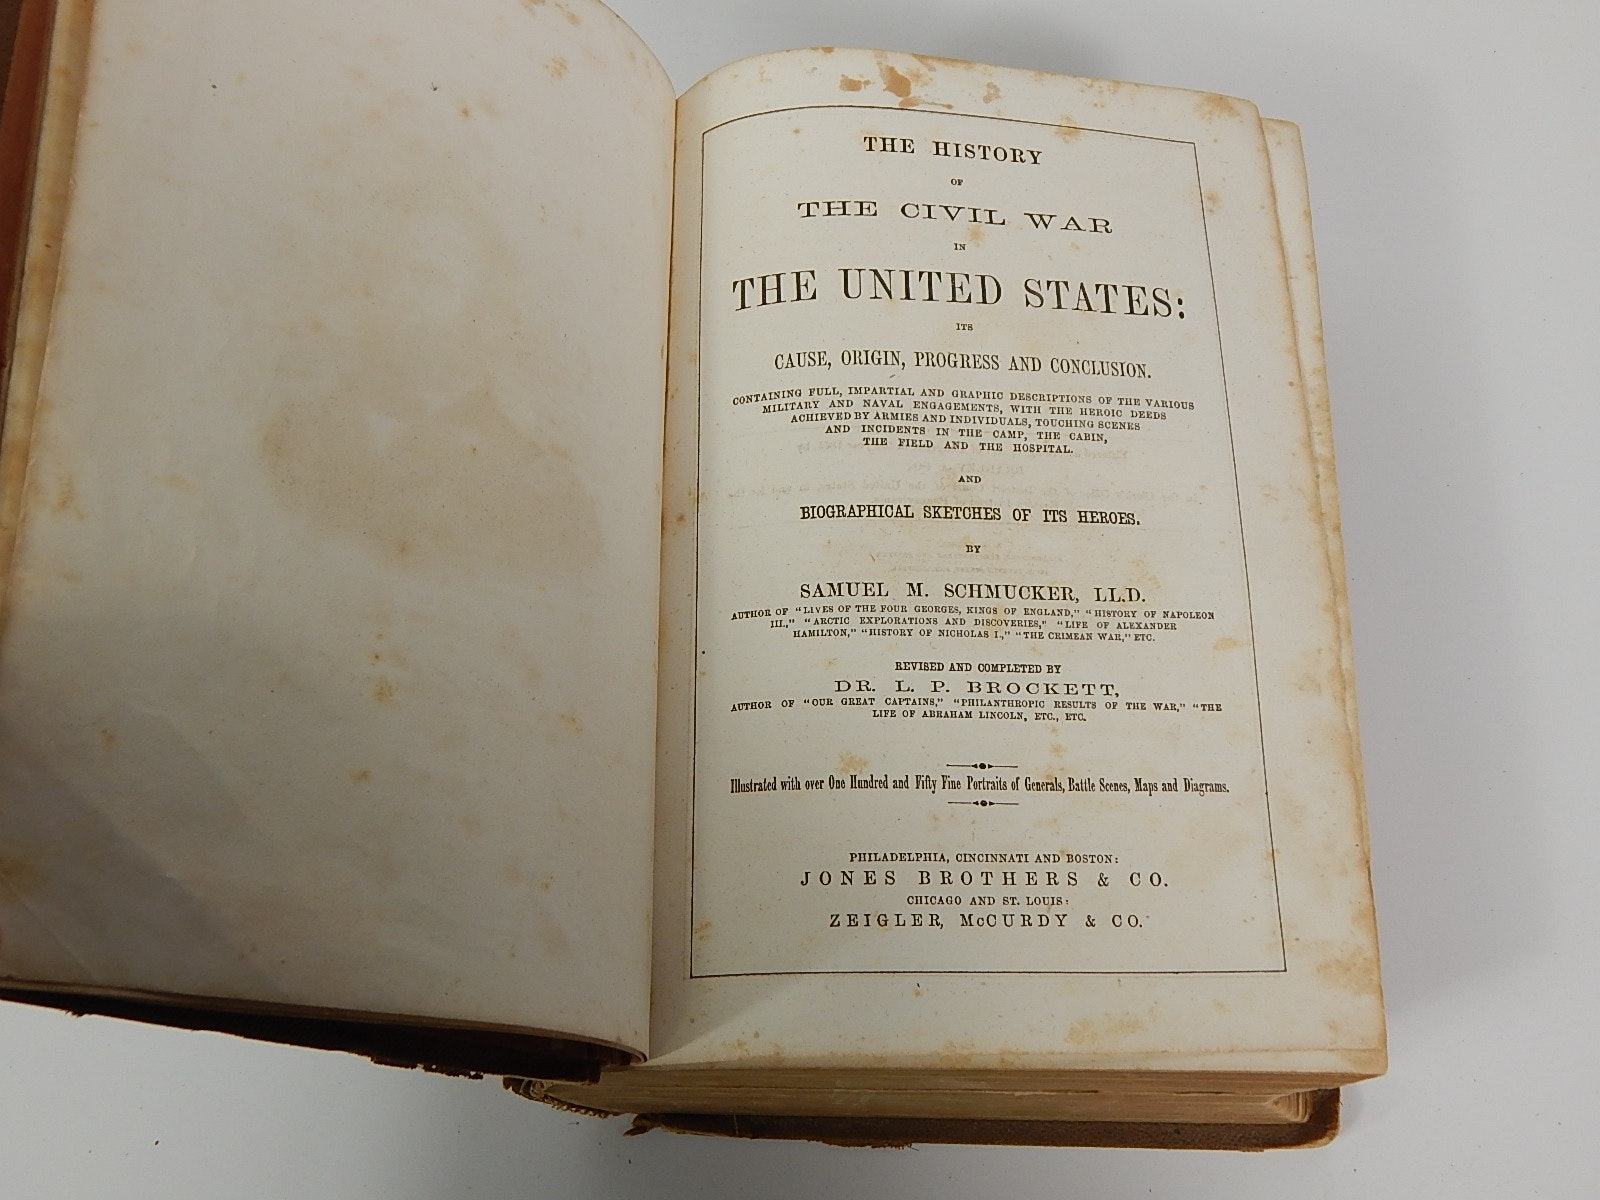 an introduction to the history of civil war in the united states Get this from a library an introduction to a history of the second american war for independence or the civil war in the united states : prefaced by a treatise on the.